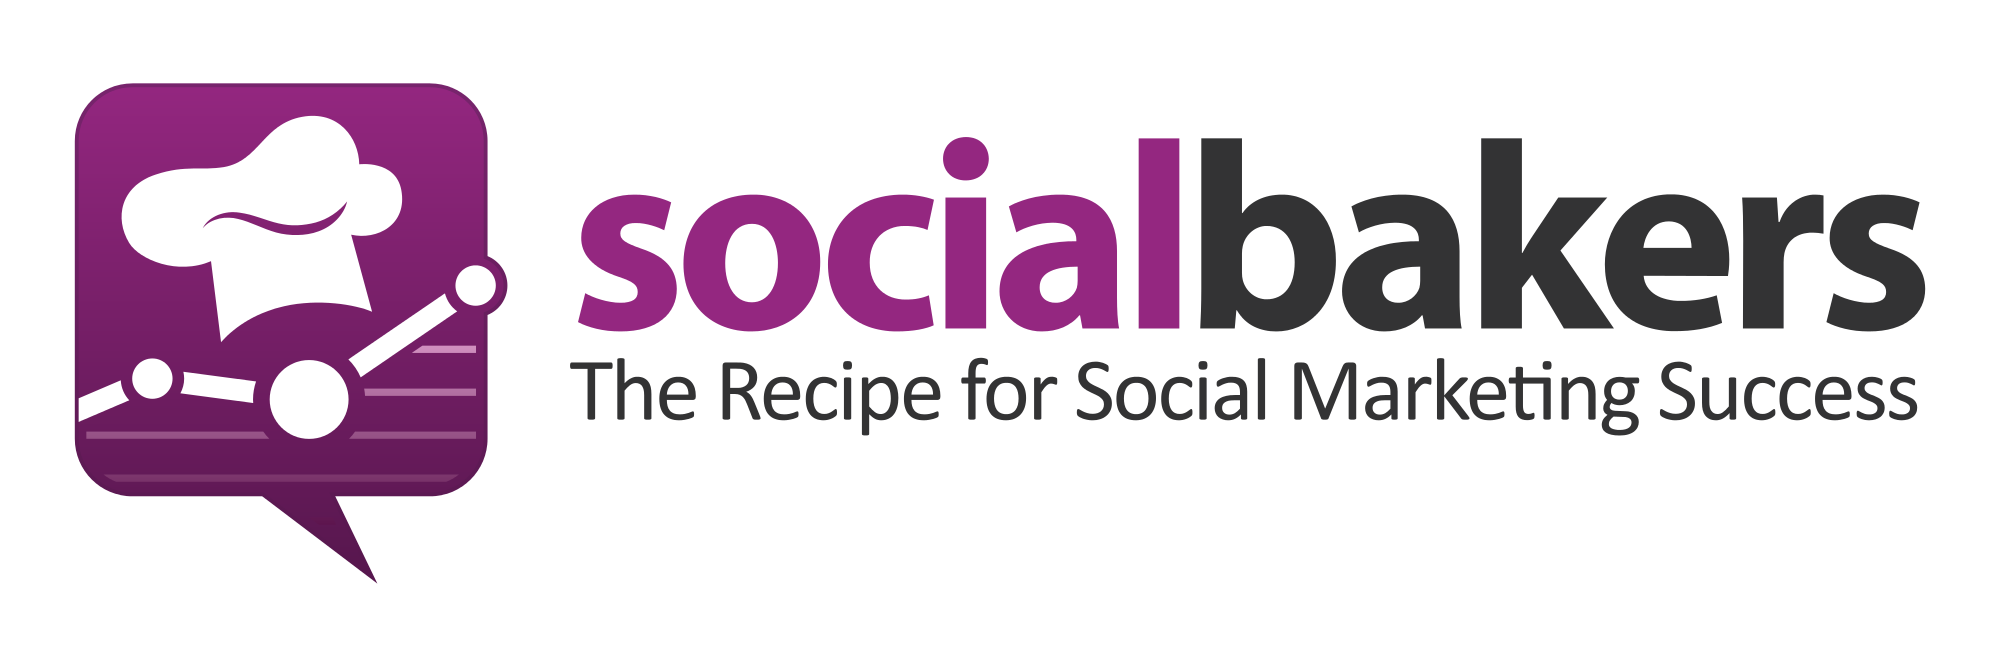 socialbakers Marken Facebook